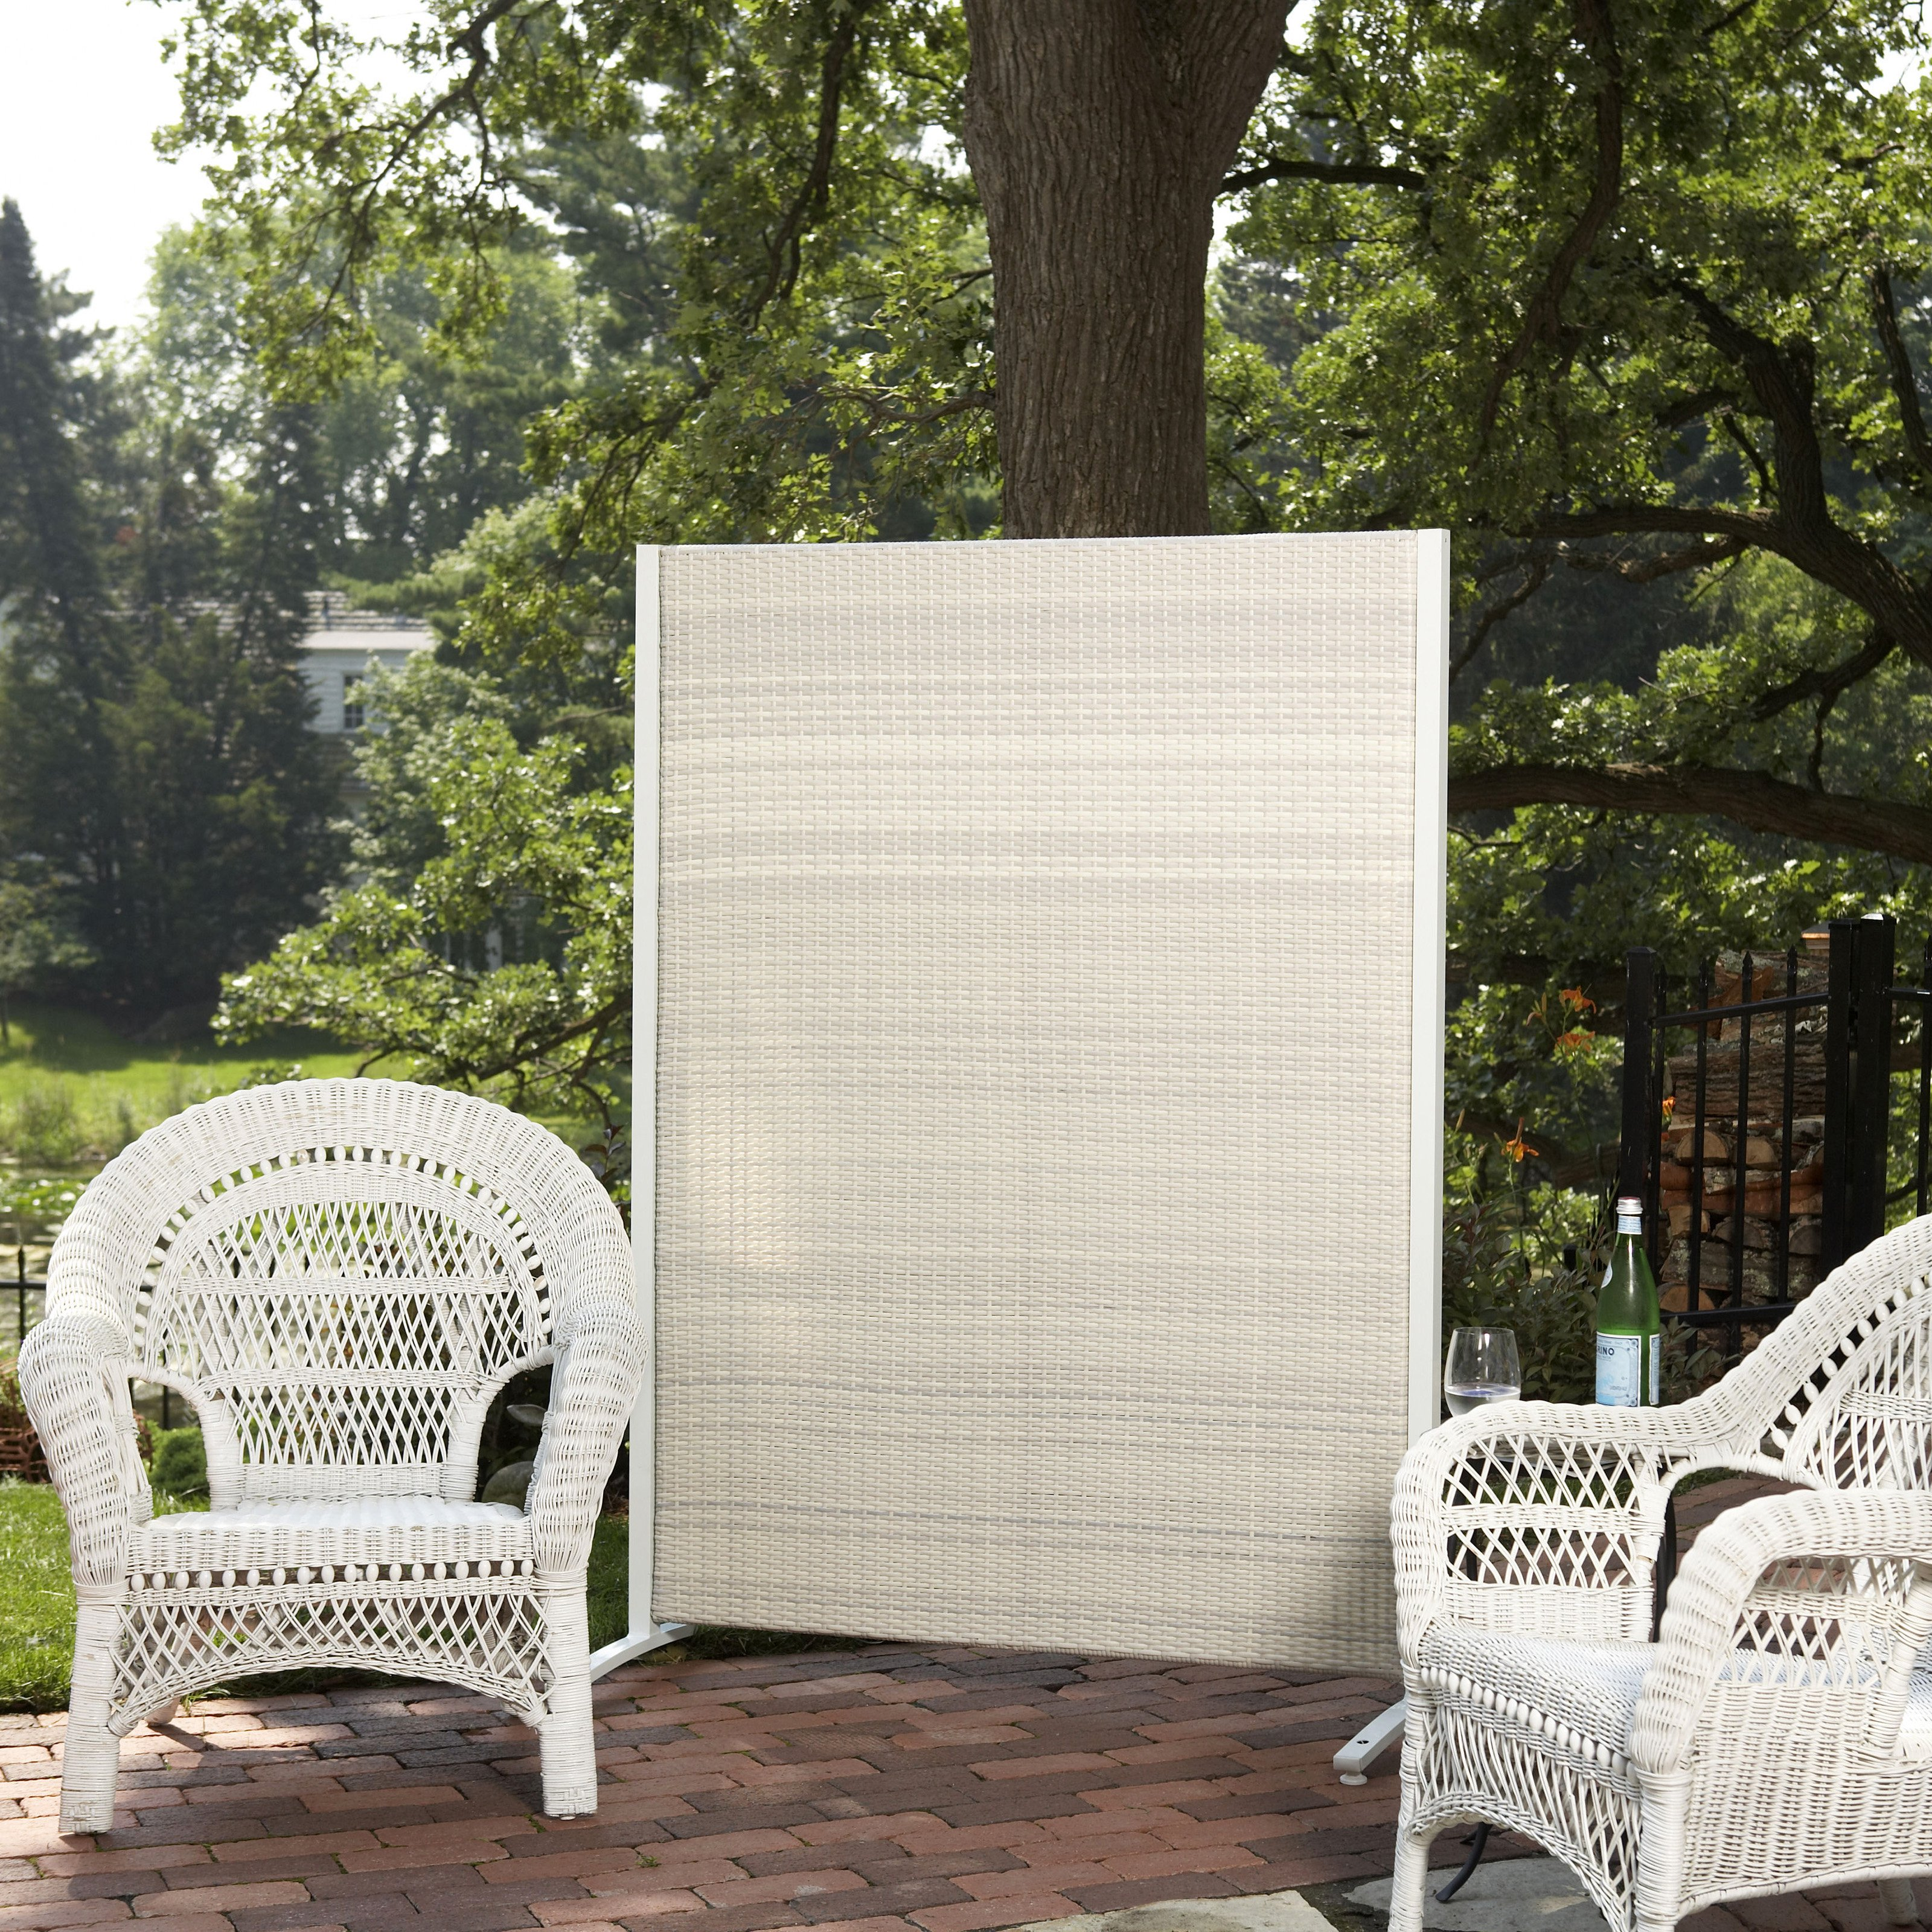 Versare Outdoor Wicker Resin Room Divider  Walmartcom. Patio Furniture South Orange County California. Zero Gravity Recliner Outdoor Furniture. Porch Sling Mesh Replacement. Brown Jordan Patio Furniture Cleaner. Porch Swing On Deck. Patio Furniture San Diego Clearance. Round Table Patio Set Outdoor. Outdoor Furniture Hutchinson Ks